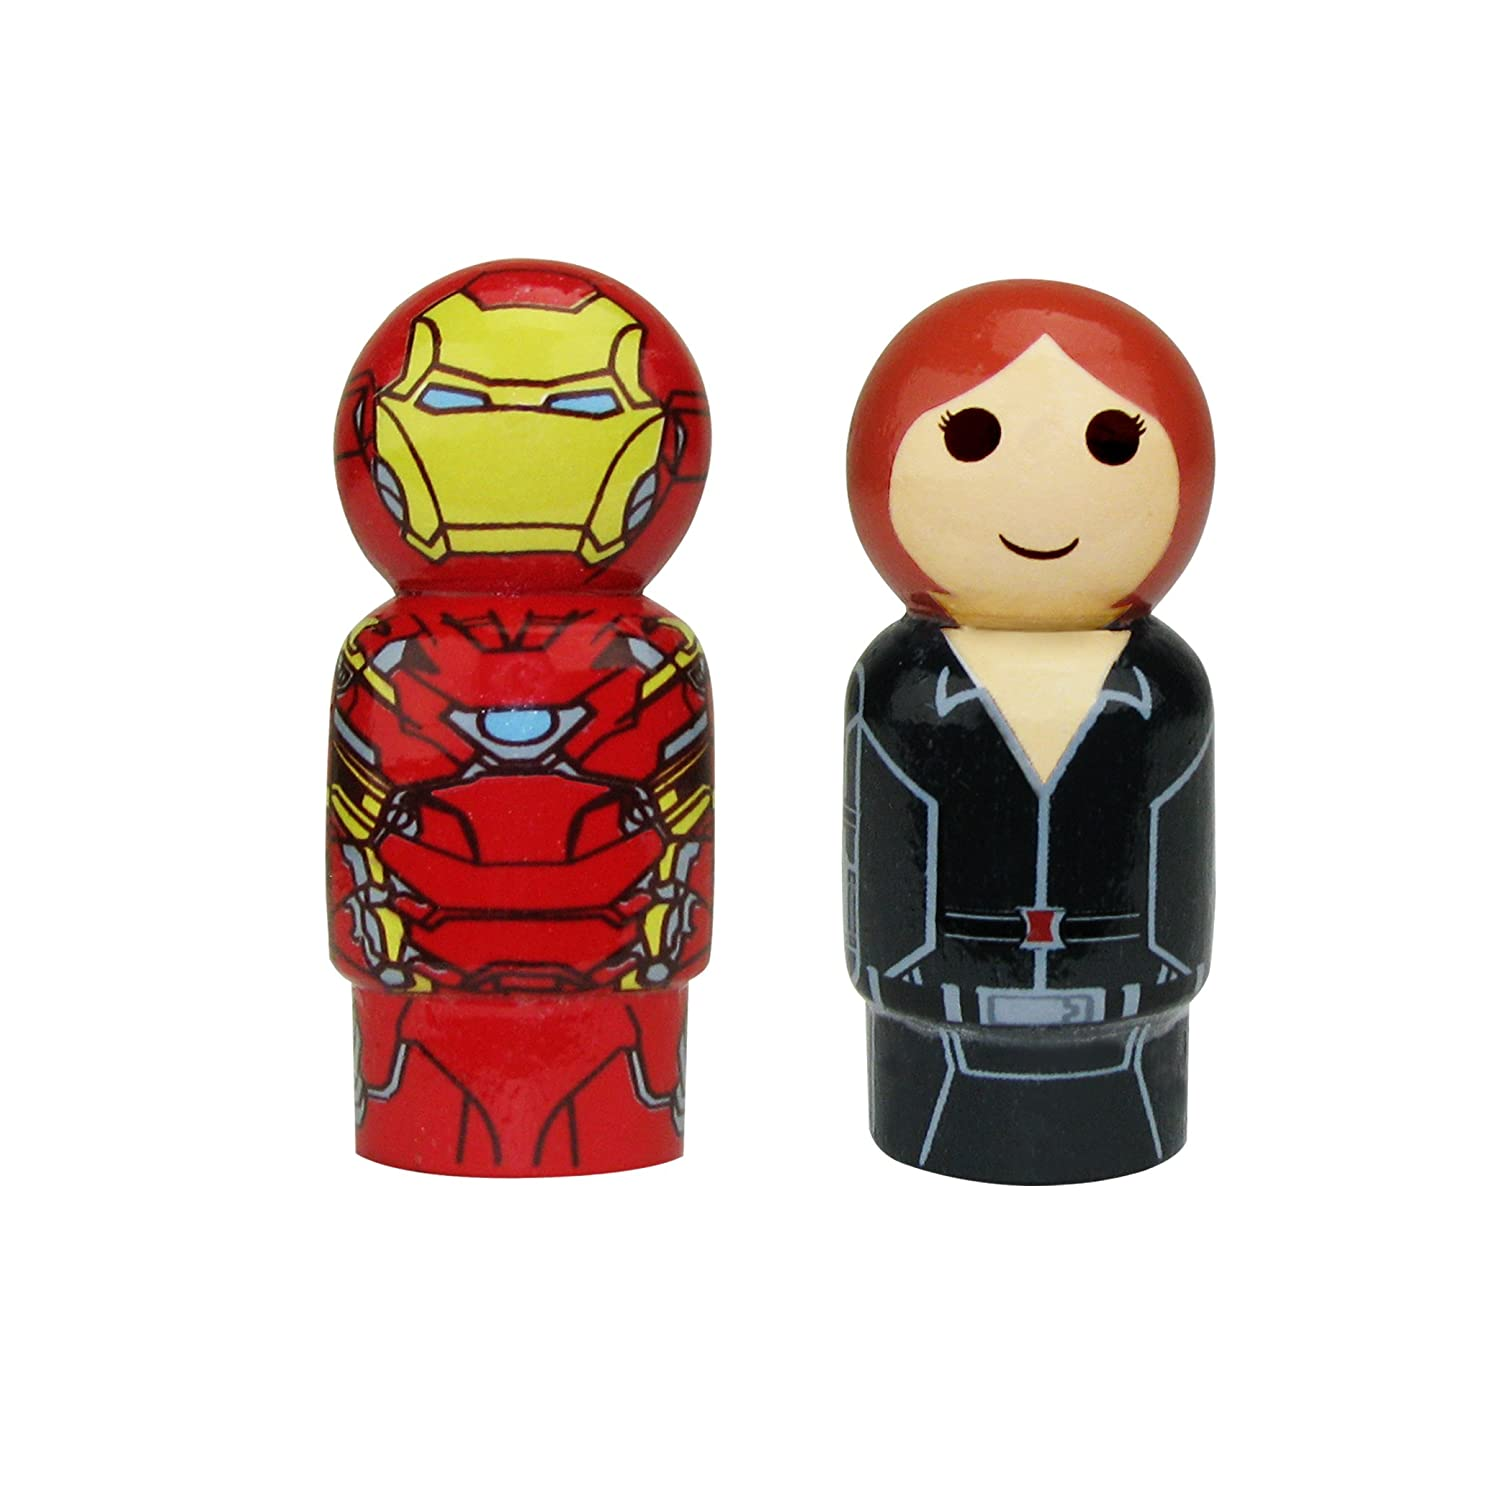 Captain America Civil War Iron Man /& Black Widow Pin Mate Set of 2 Collectible Bif Bang Pow 2 2 EE Distribution BBP24900A1AMZ